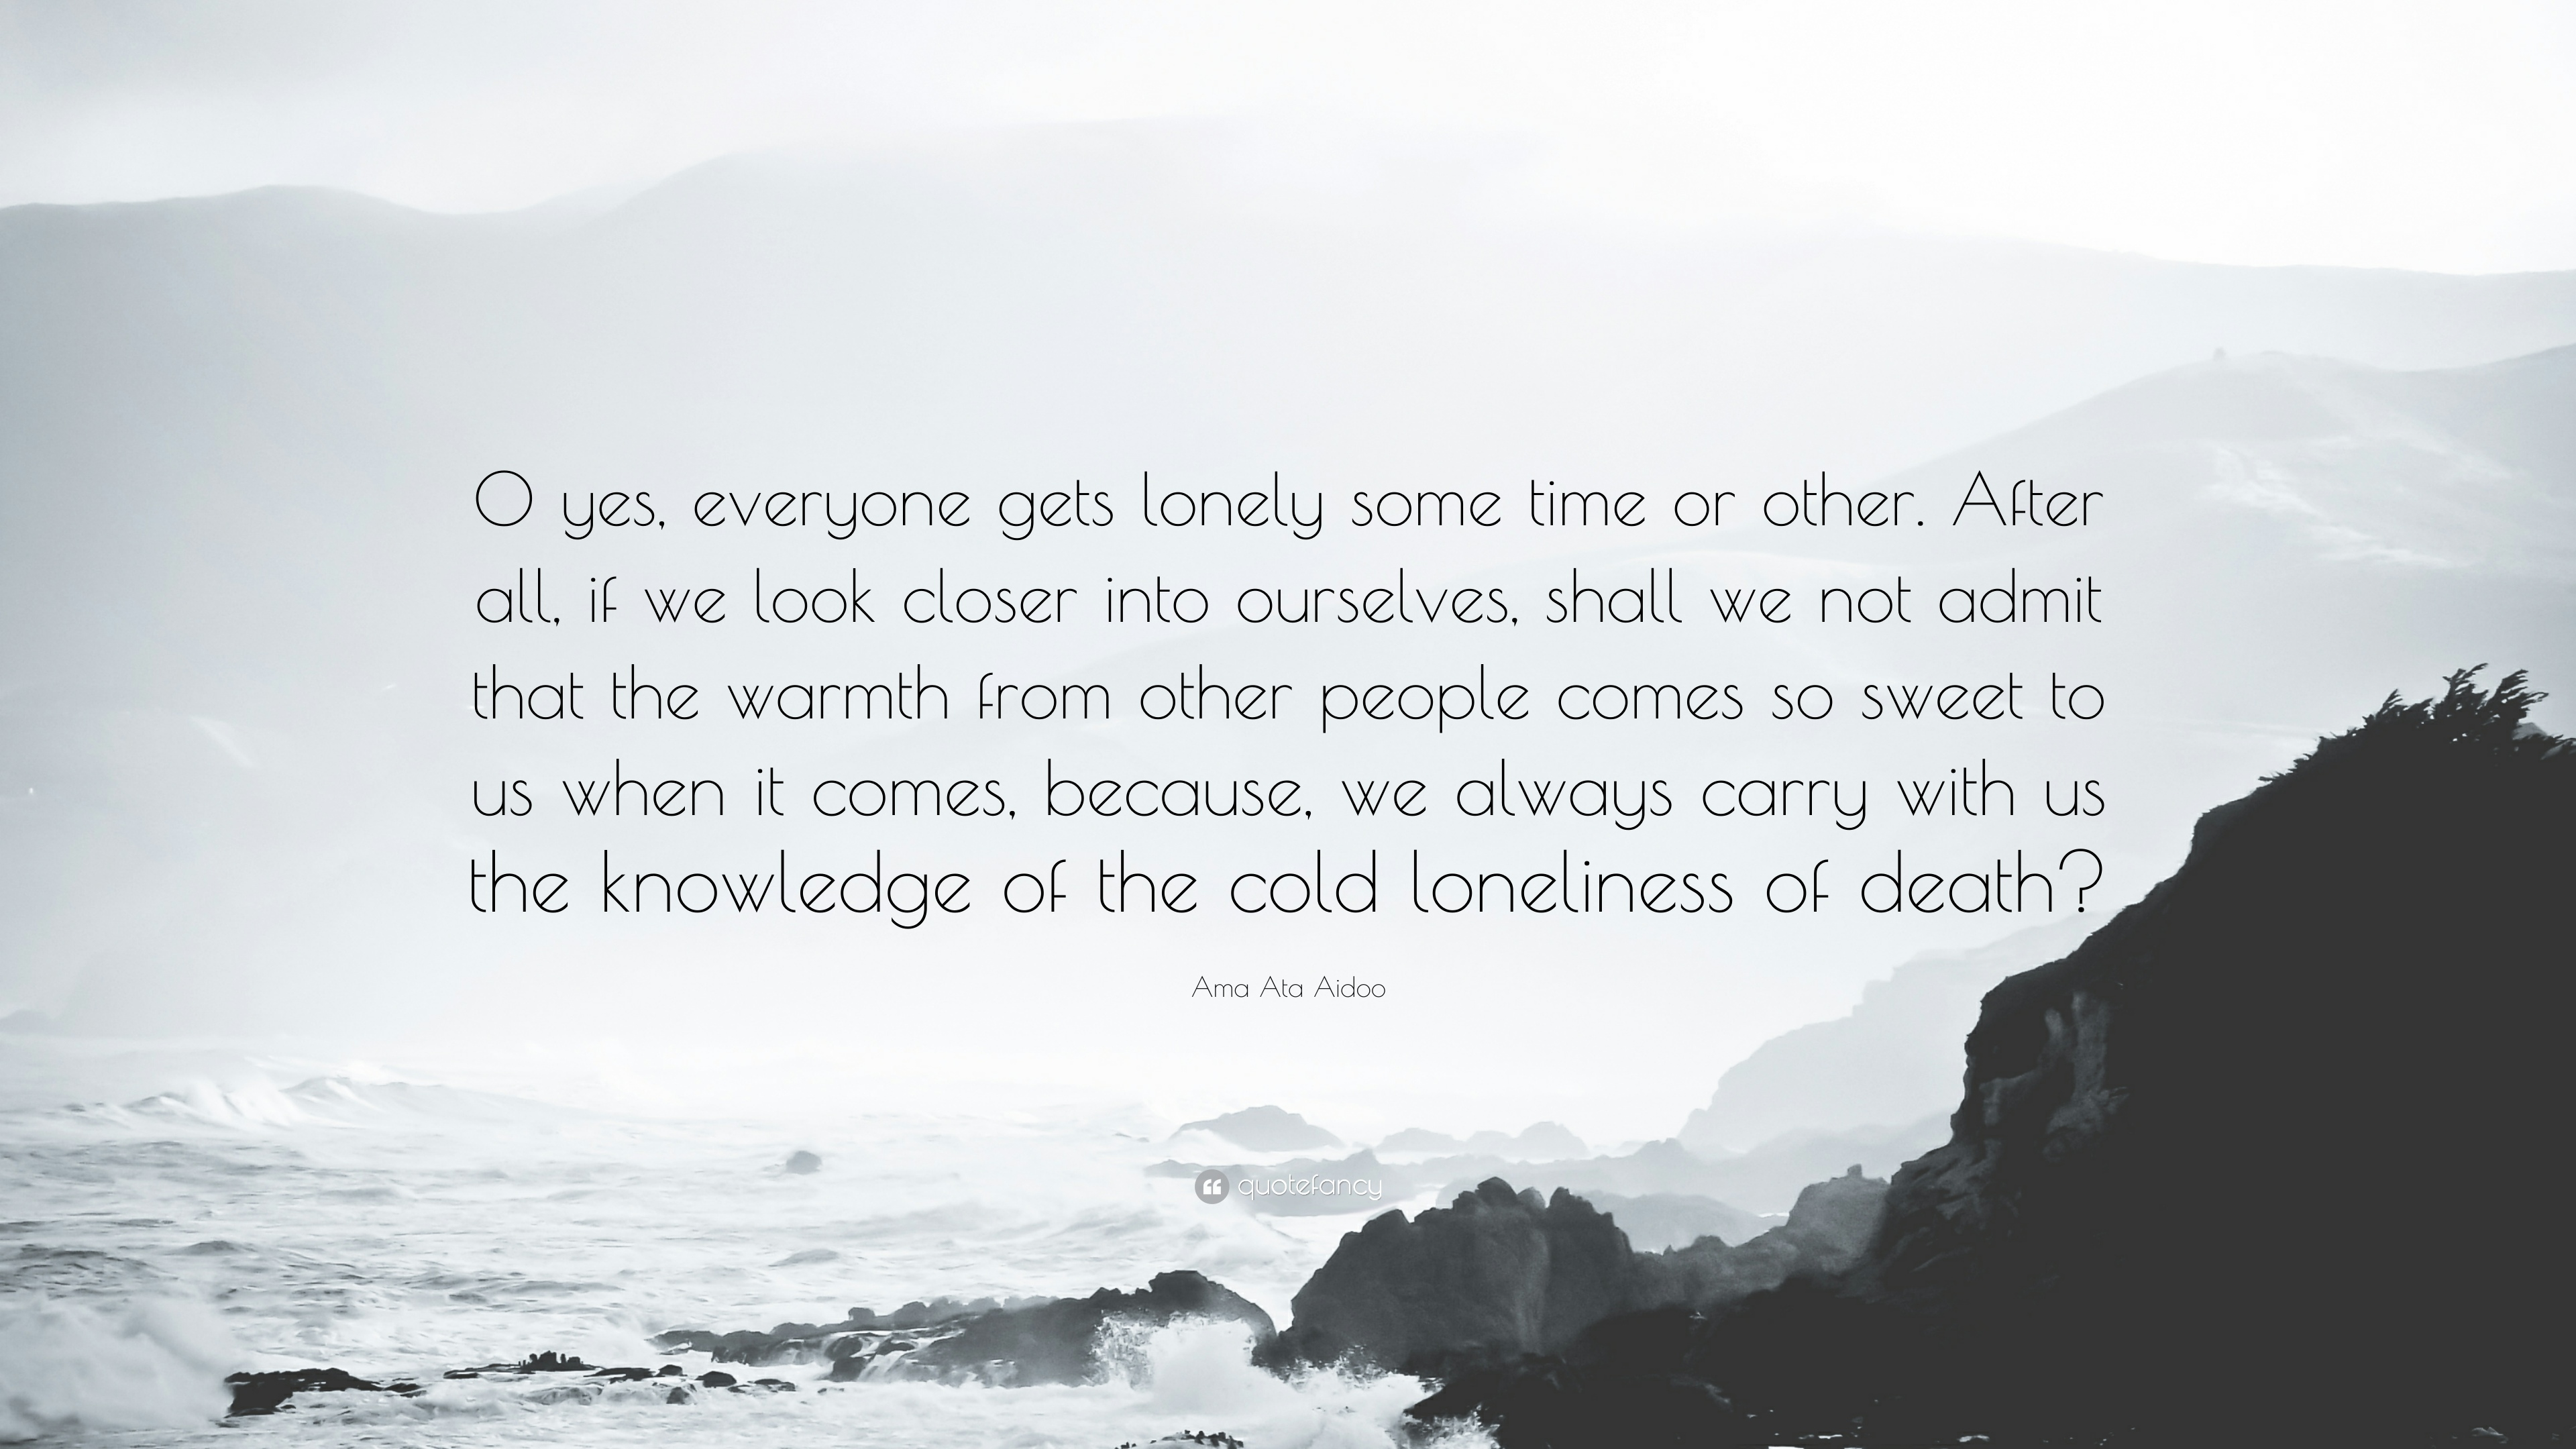 """Ama Ata Aidoo Quote: """"O yes, everyone gets lonely some time or other. After  all, if we look closer into ourselves, shall we not admit that the..."""" (7  wallpapers) - Quotefancy"""